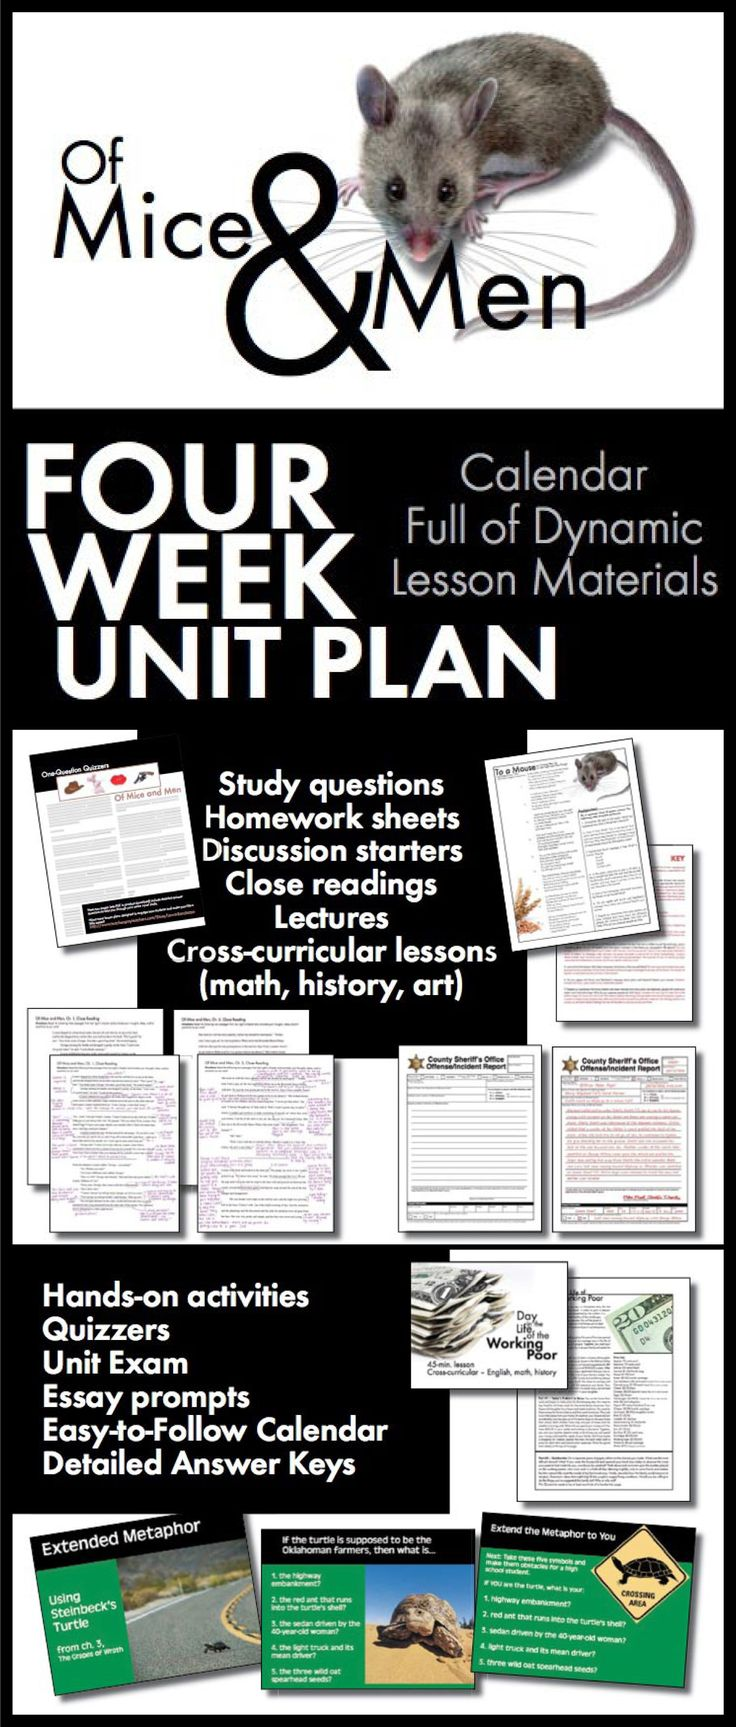 best images about of mice and men lesson plans of mice and men unit plan four full weeks of dynamic lessons ccss